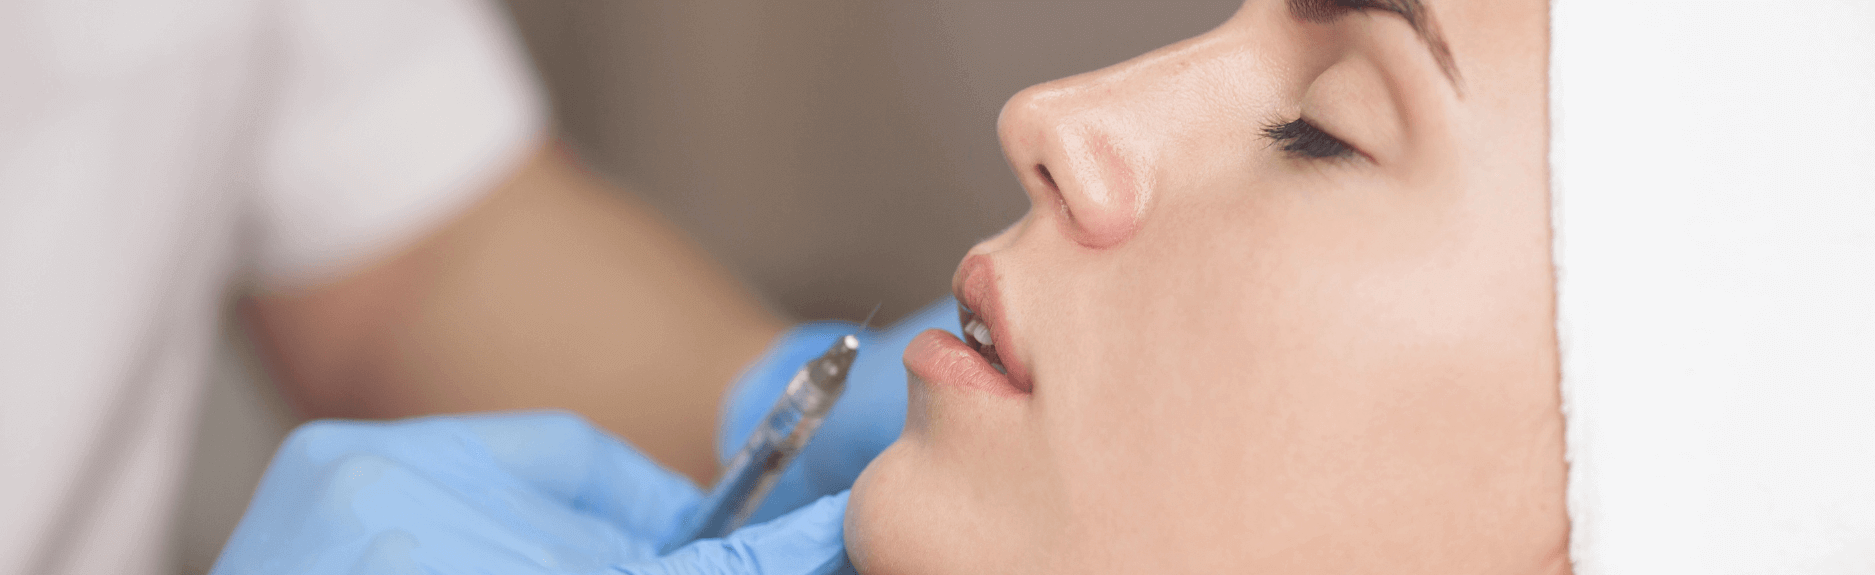 Whats the difference between Profhilo Injections & Dermal Fillers